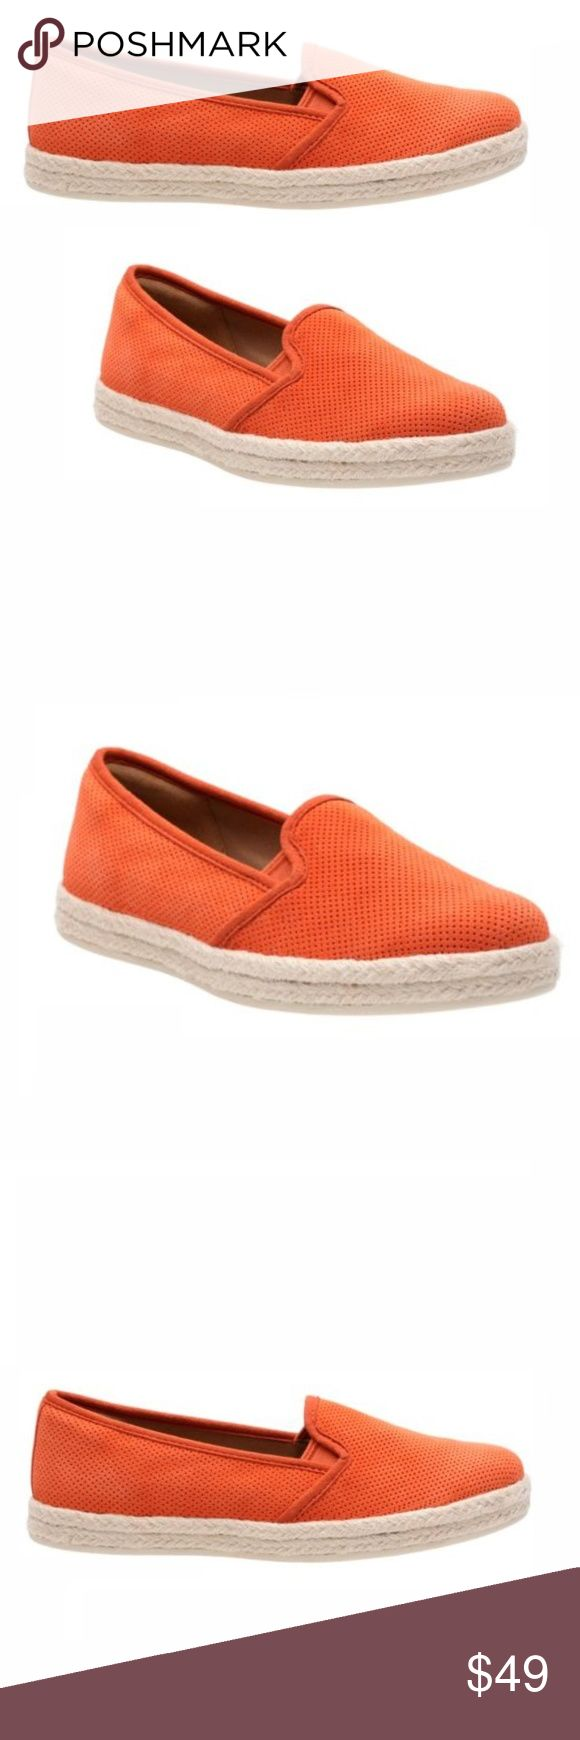 Clarks Azella Theoni Orange Espadrille Slip on Clarks Azella Theoni Espadrille Orange Cow Suede Size 7 The Azella Theoni is a classic espadrille women's slip-on from the Clarks® Collection. Features a chic orange suede with perforated detailing, a woven trim, convenient stretch gore panels, a soft textile lining, a removable Clarks Cushion Soft™ with OrthoLite® footbed, and a rubber outsole. This women's casual loafer delivers a fresh take on timeless summer style.  Upper Material	Suede Sole…